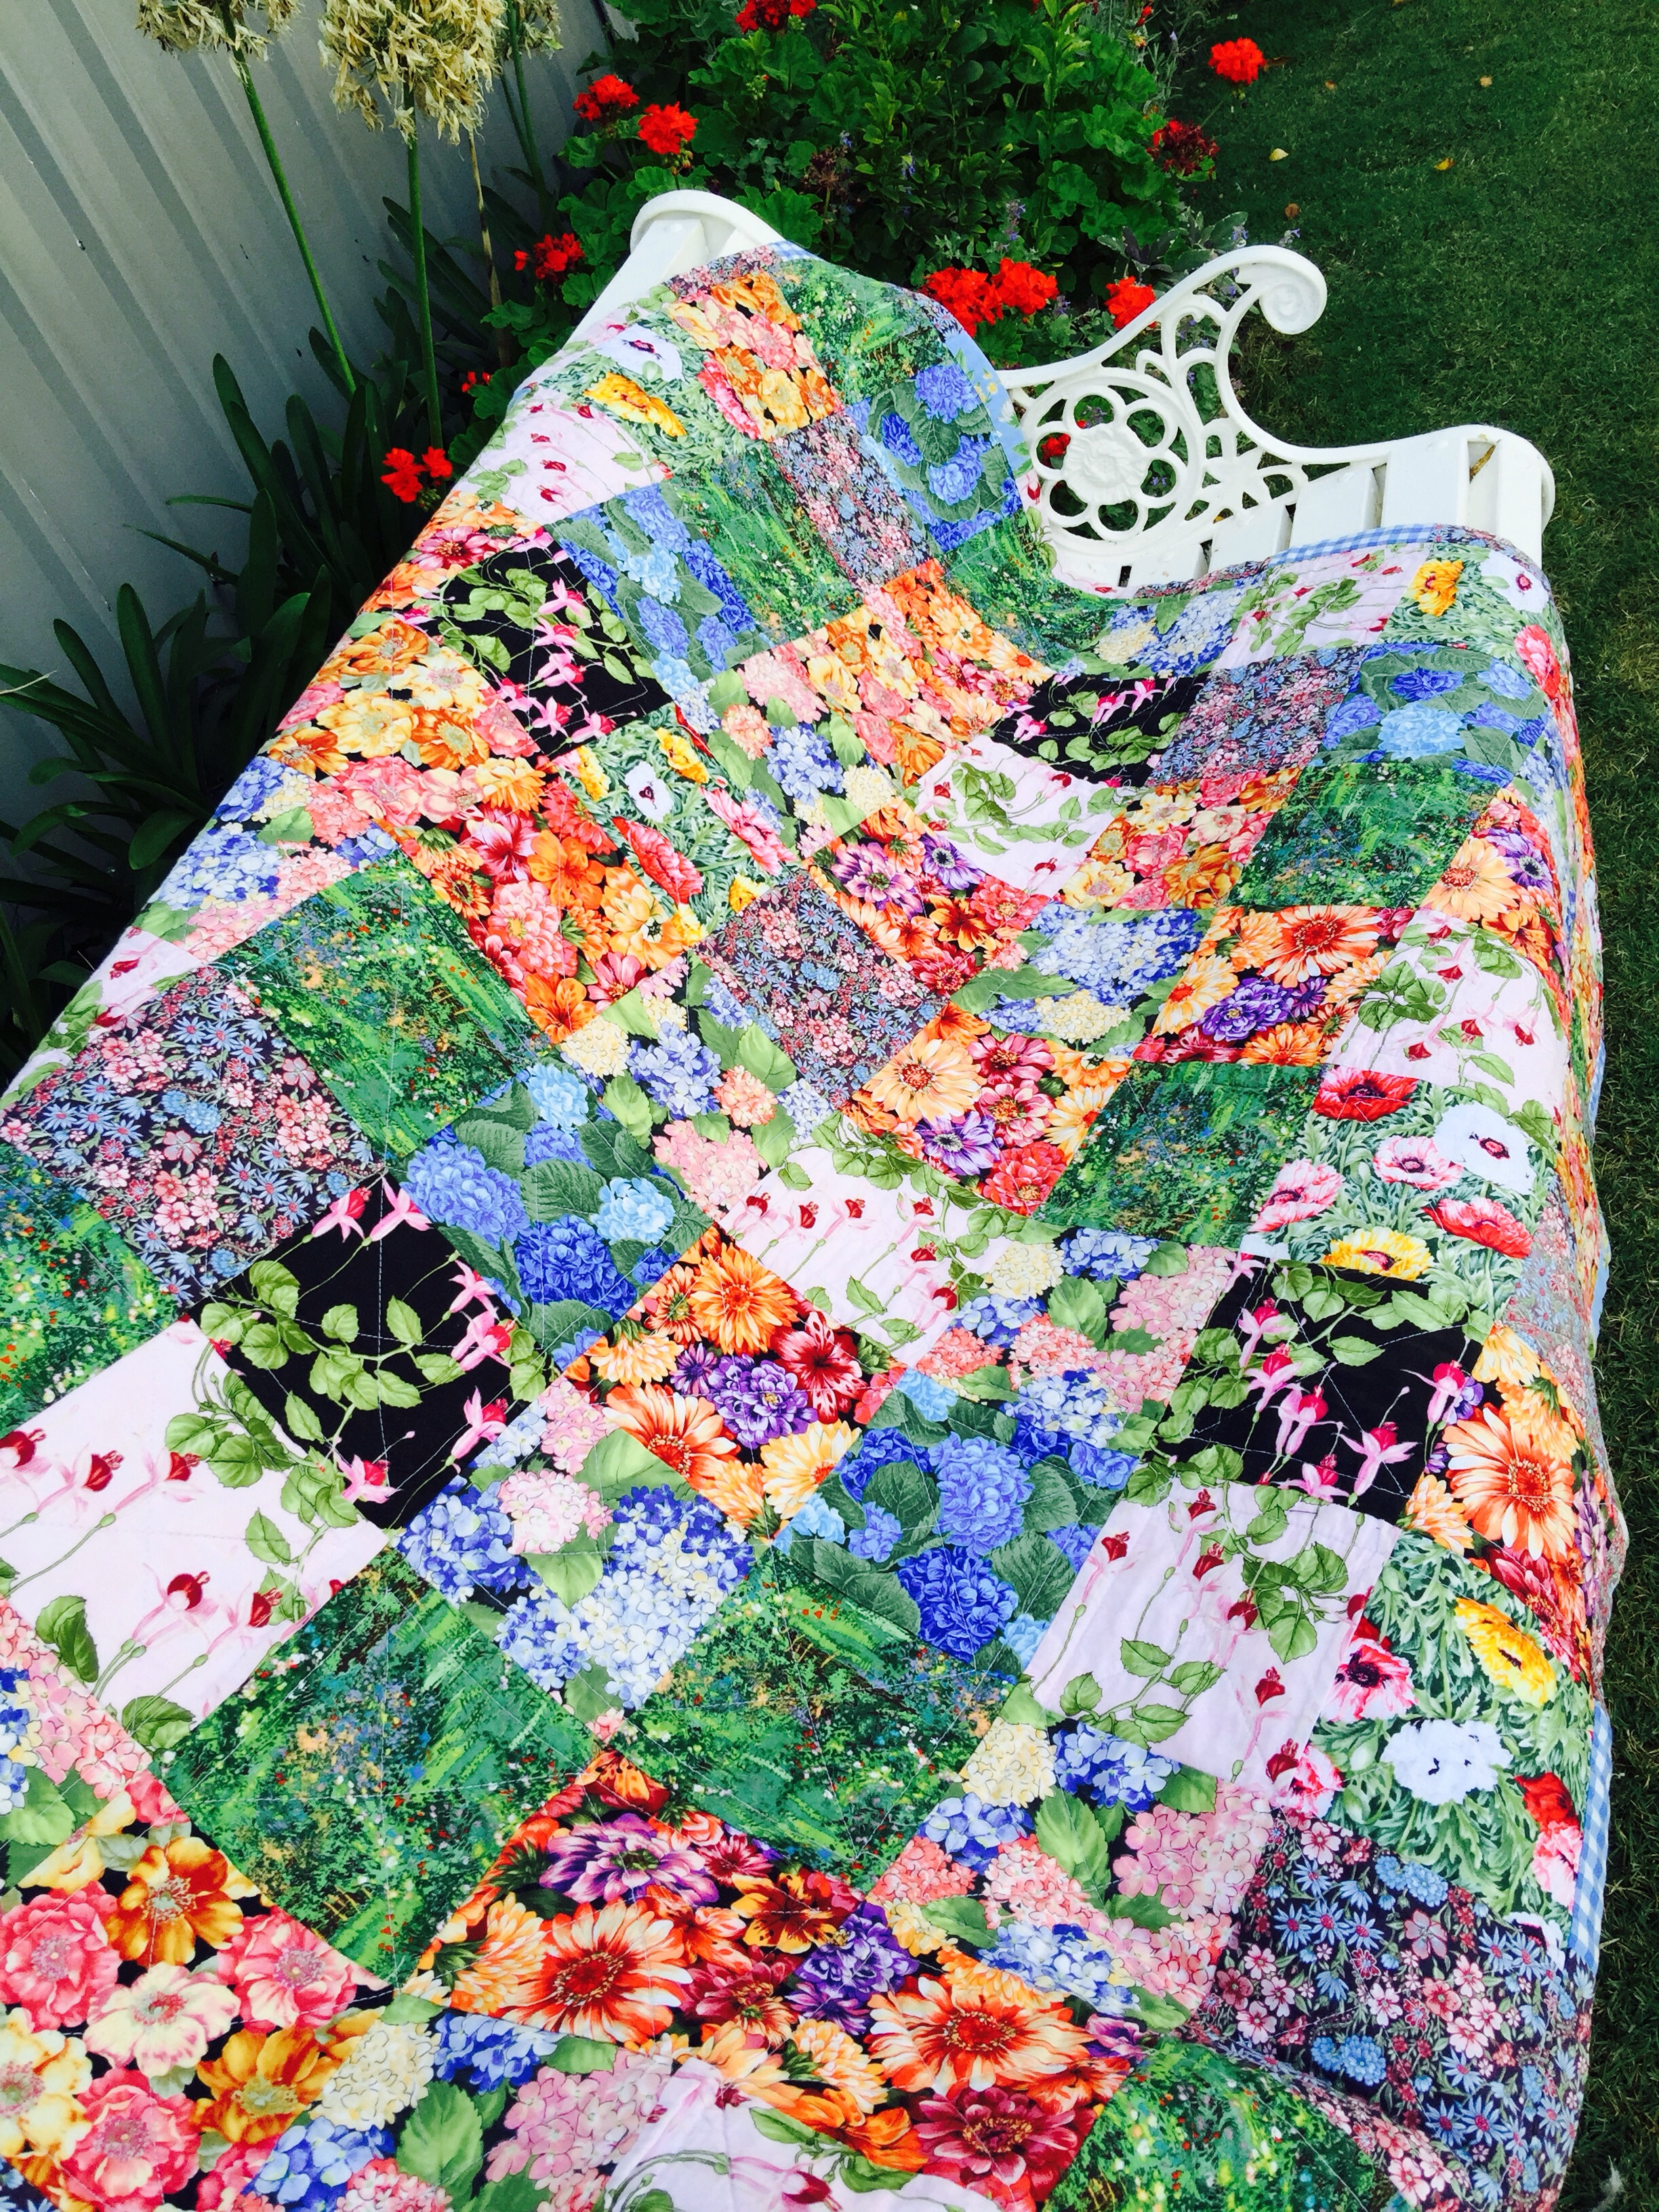 susie s garden lap quilt free pattern susies. Black Bedroom Furniture Sets. Home Design Ideas